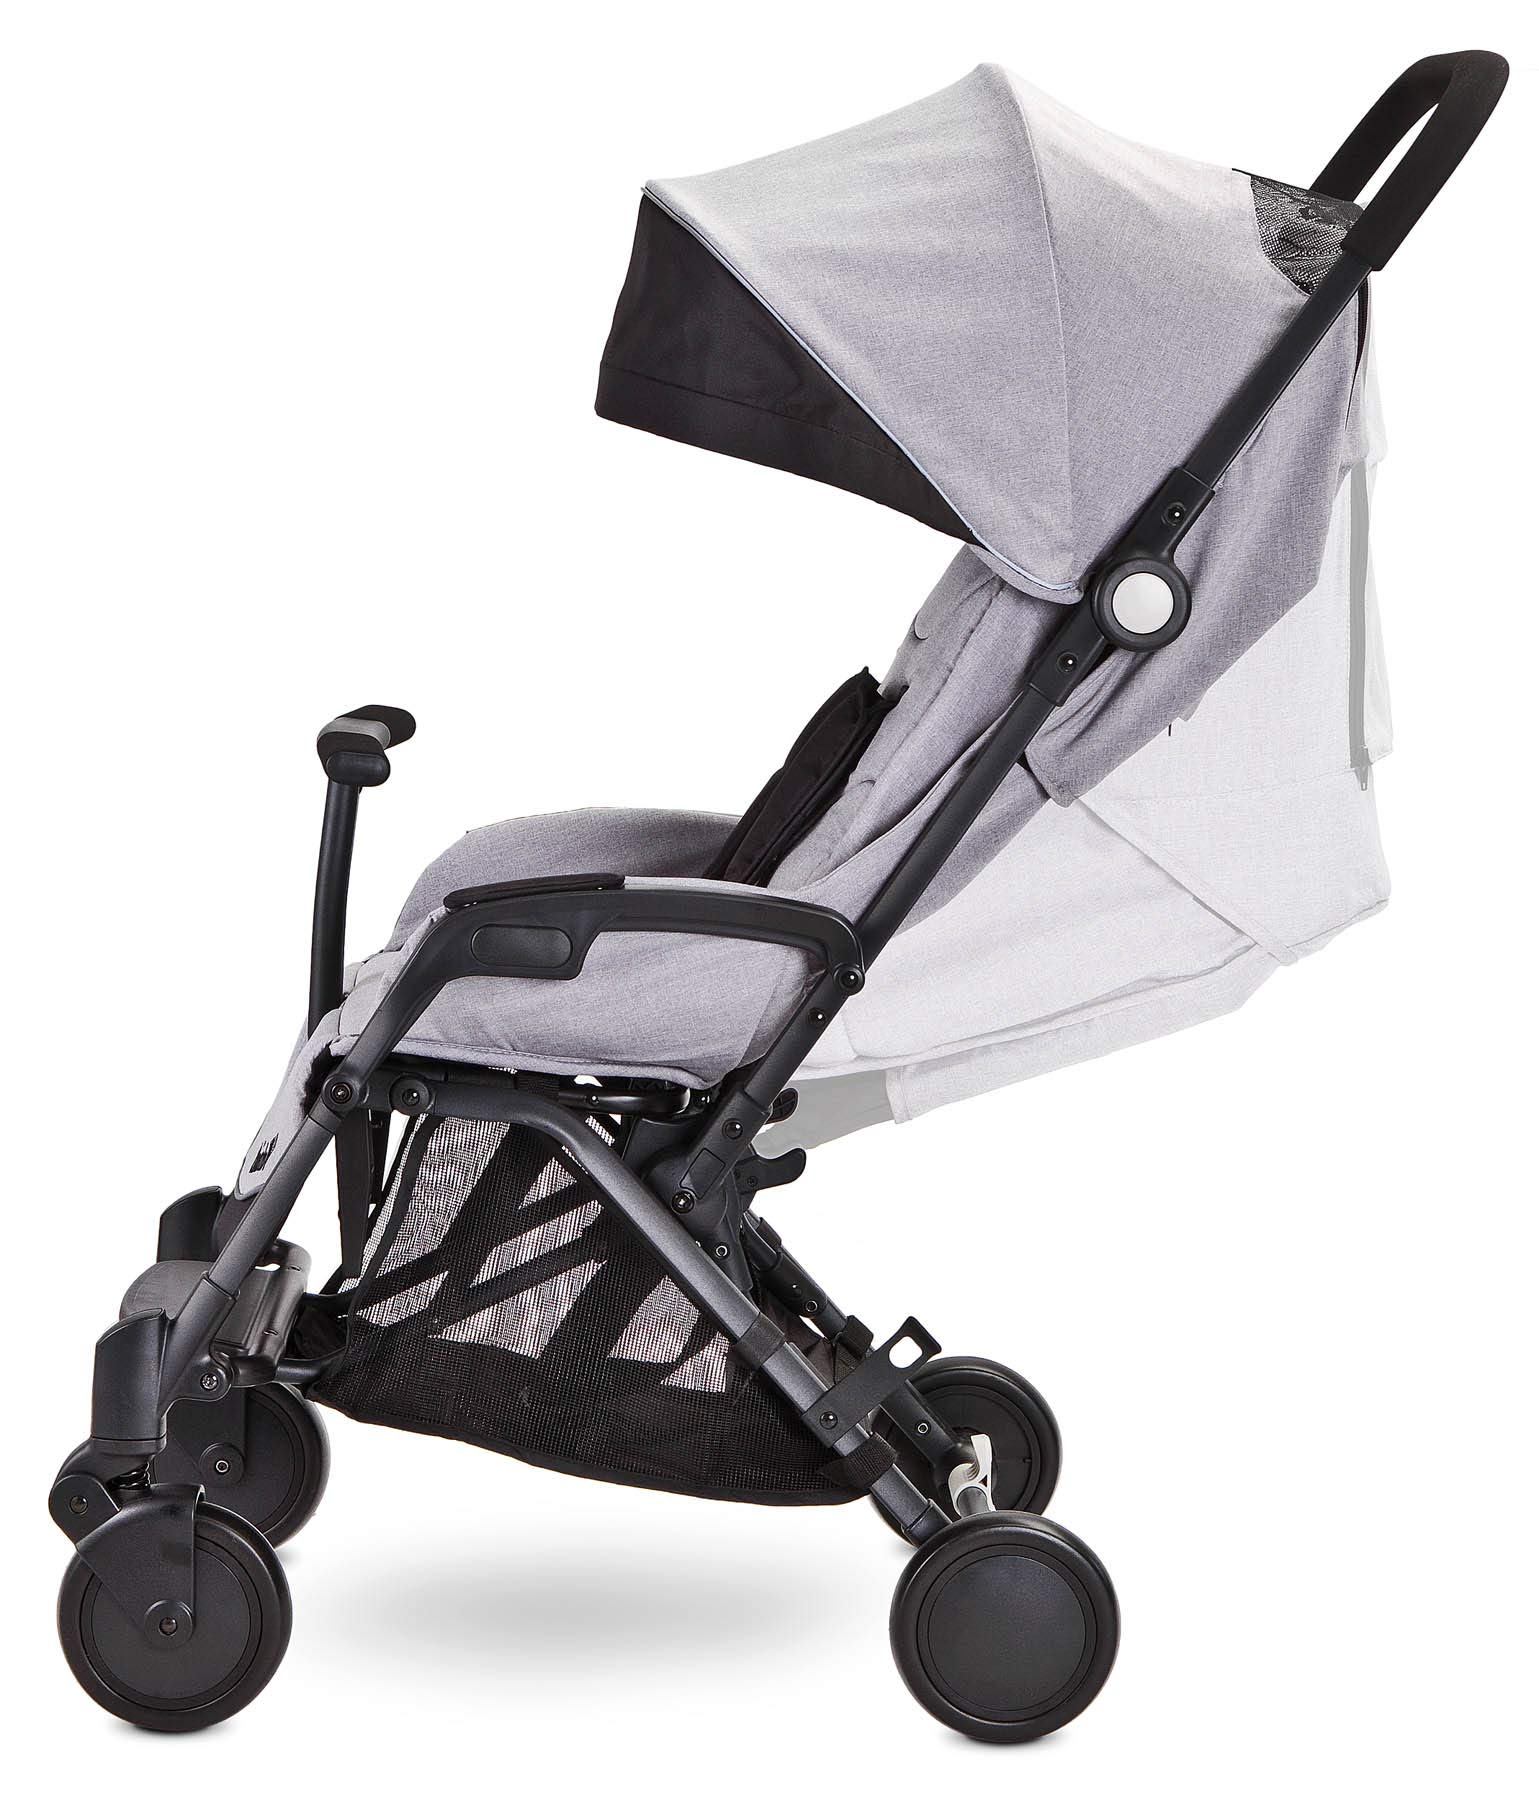 Aviator Ultralight Pushchair Grey Caretero Stroller for babies from 6 months Month weighing up to 15 kg Compact size and light weight (7.1kg) for easy manoeuvring and transport Eva foam wheels front with cushioning for driving comfort 6